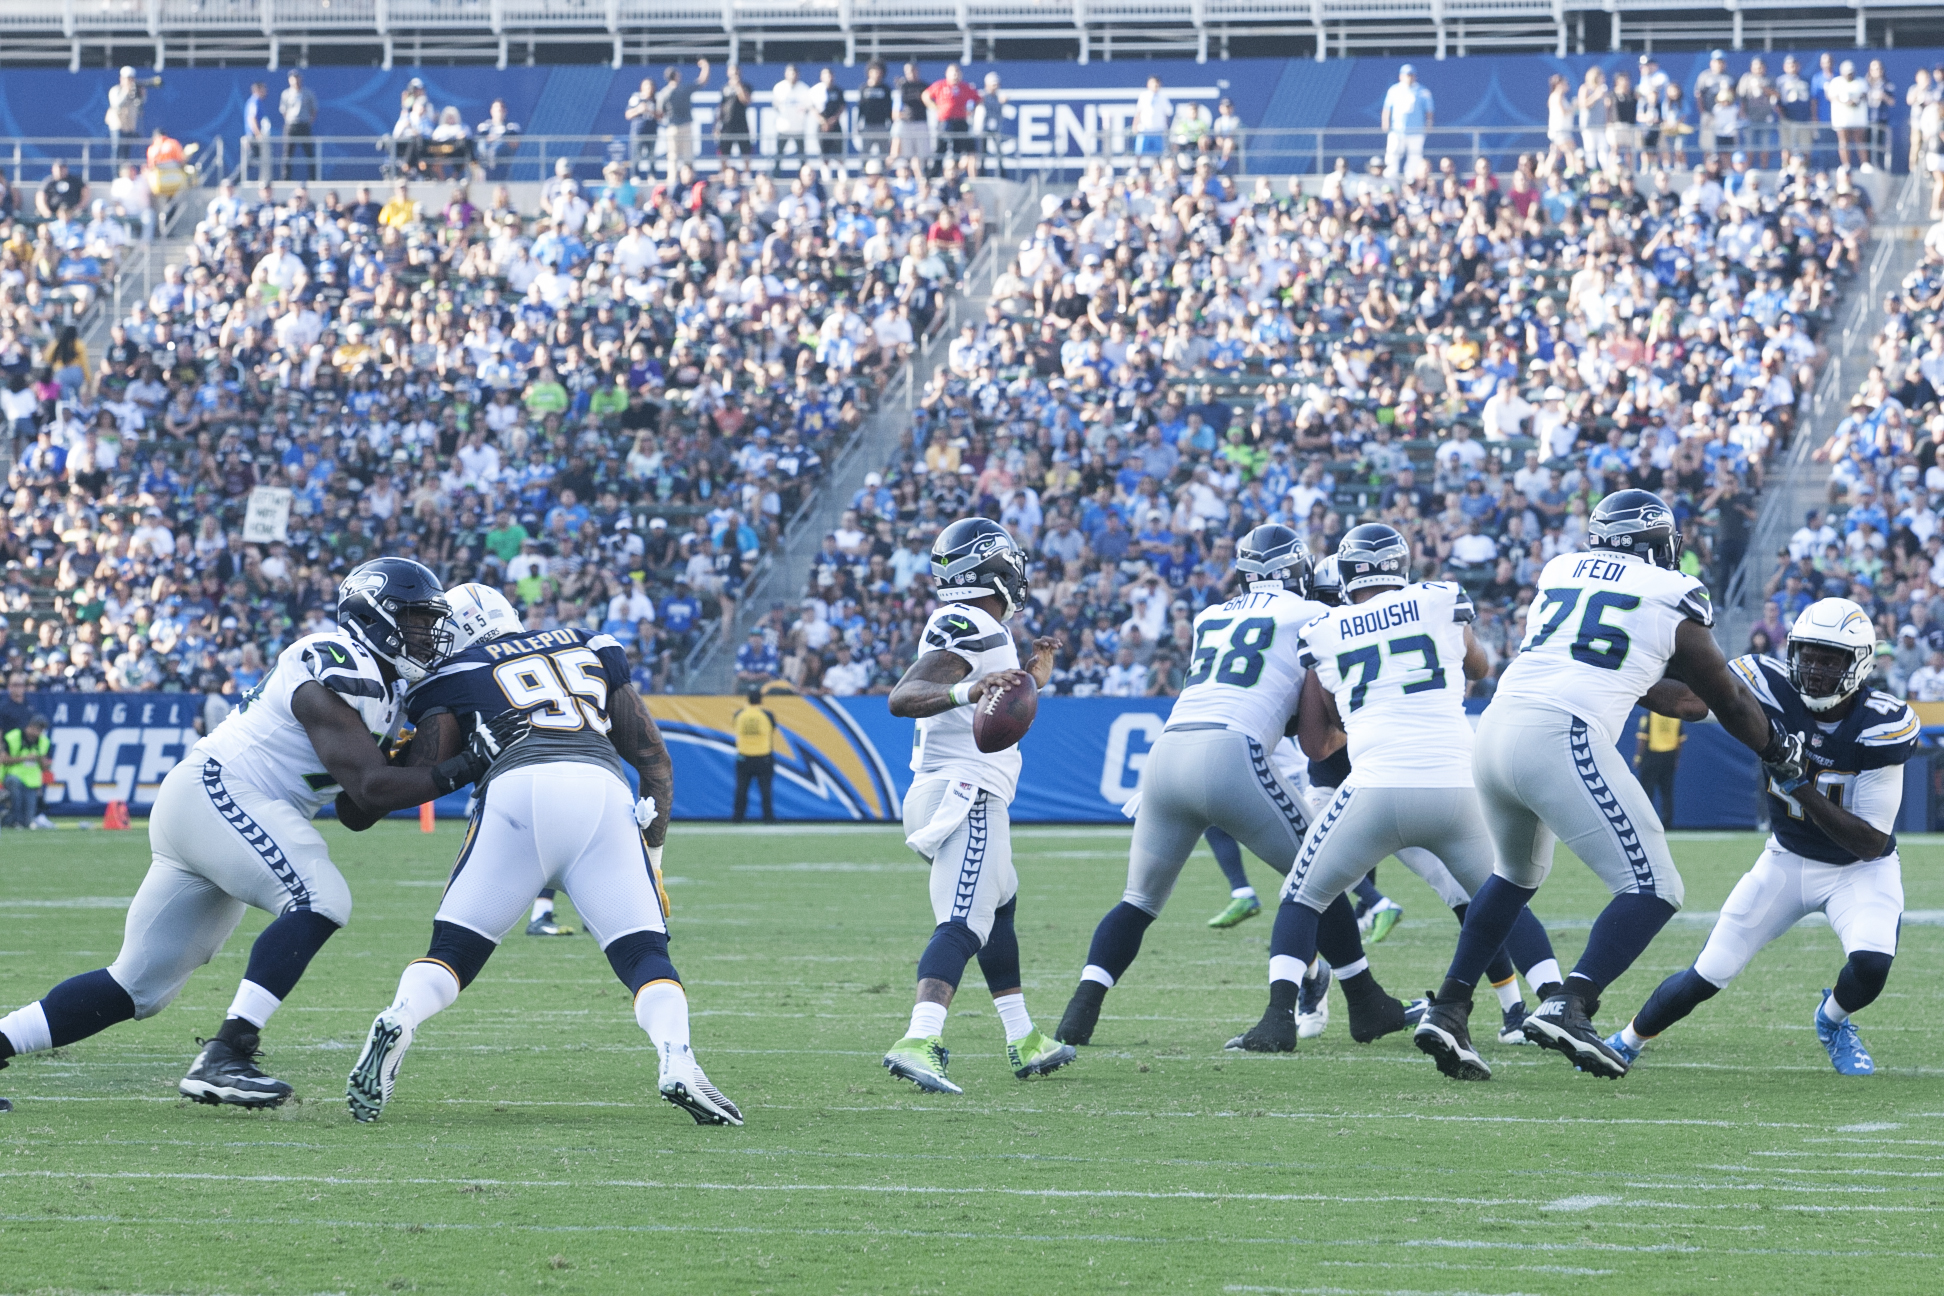 Preseason action between the Los Angeles Chargers and Seattle Seahawks. Photo by Astrud Reed/News4usonline